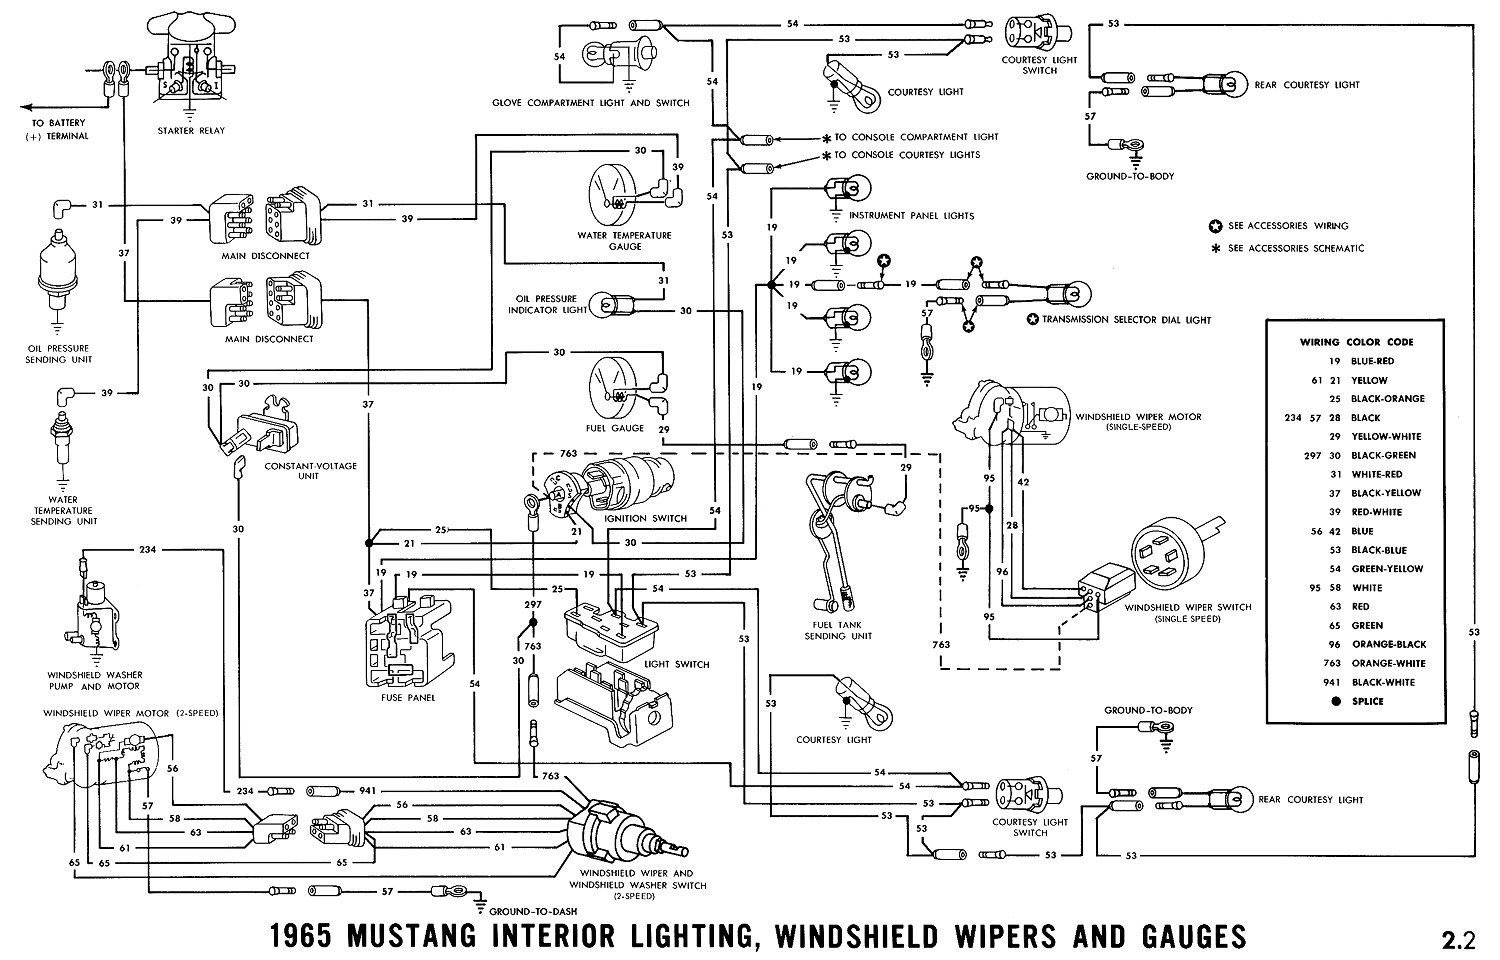 mustang gt wiring diagram 1965 mustang wiring diagrams average joe restoration oil pressure